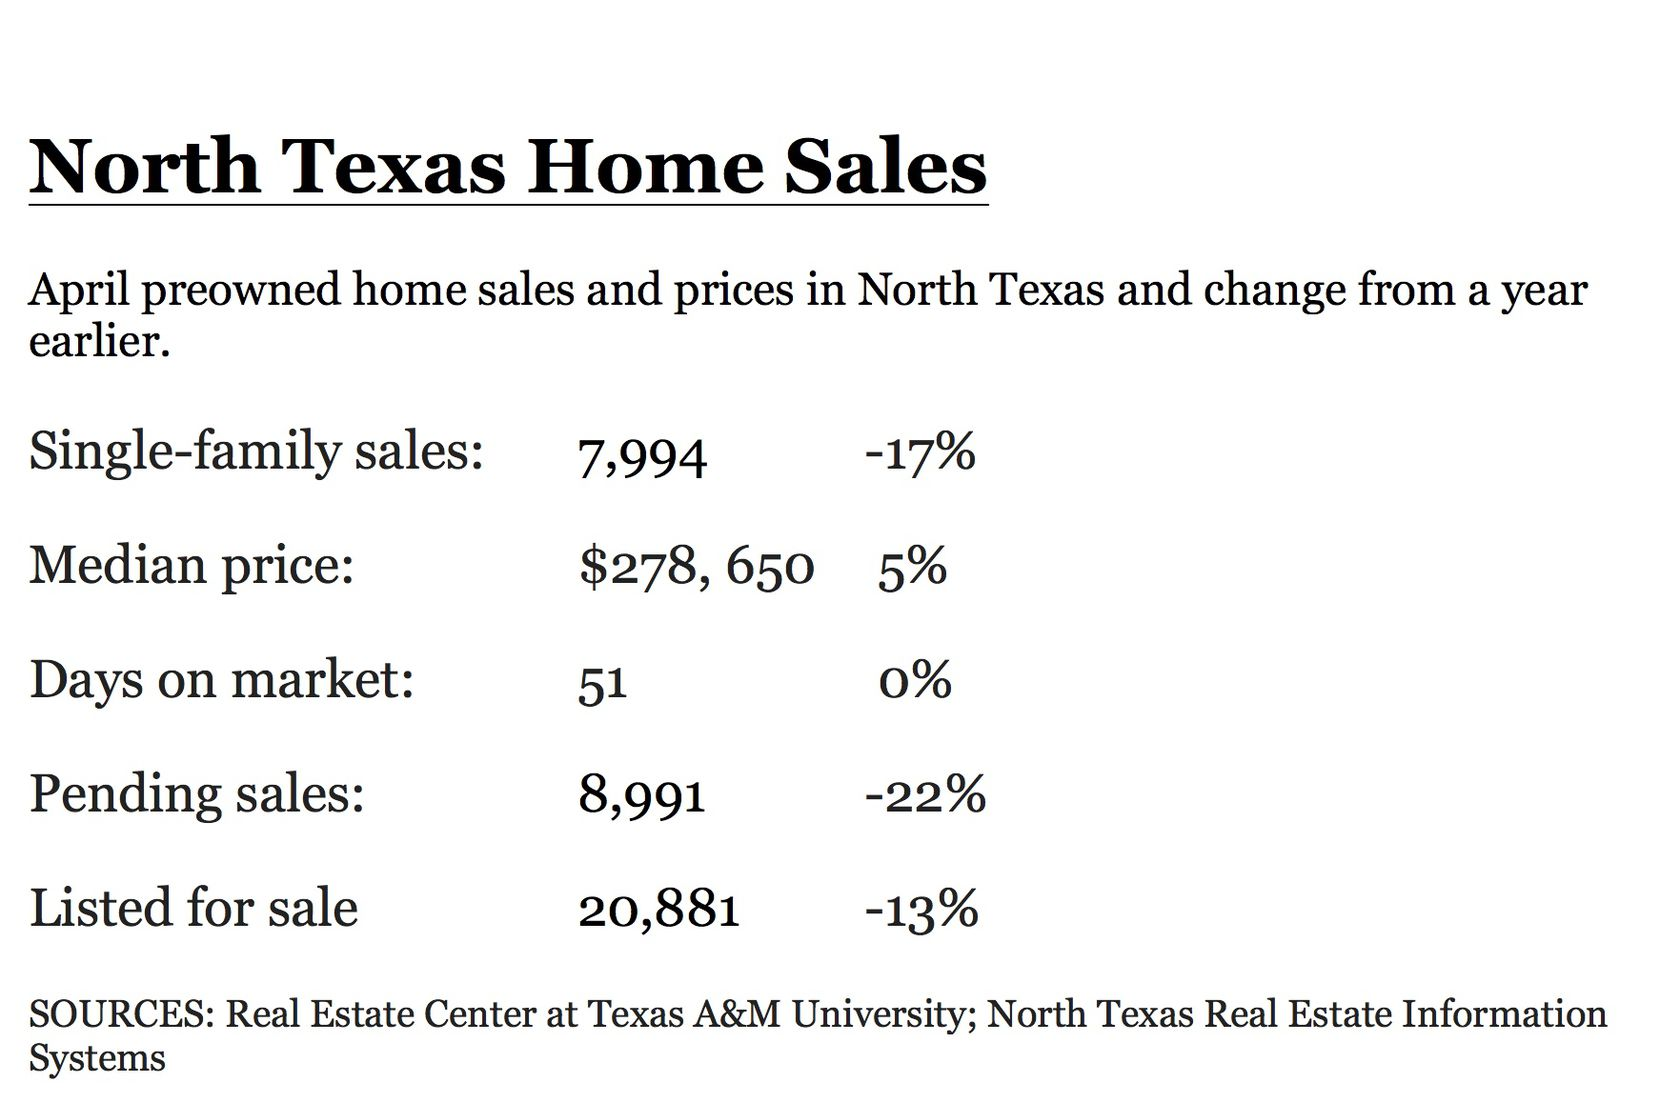 Home sales and listings were both down in April.